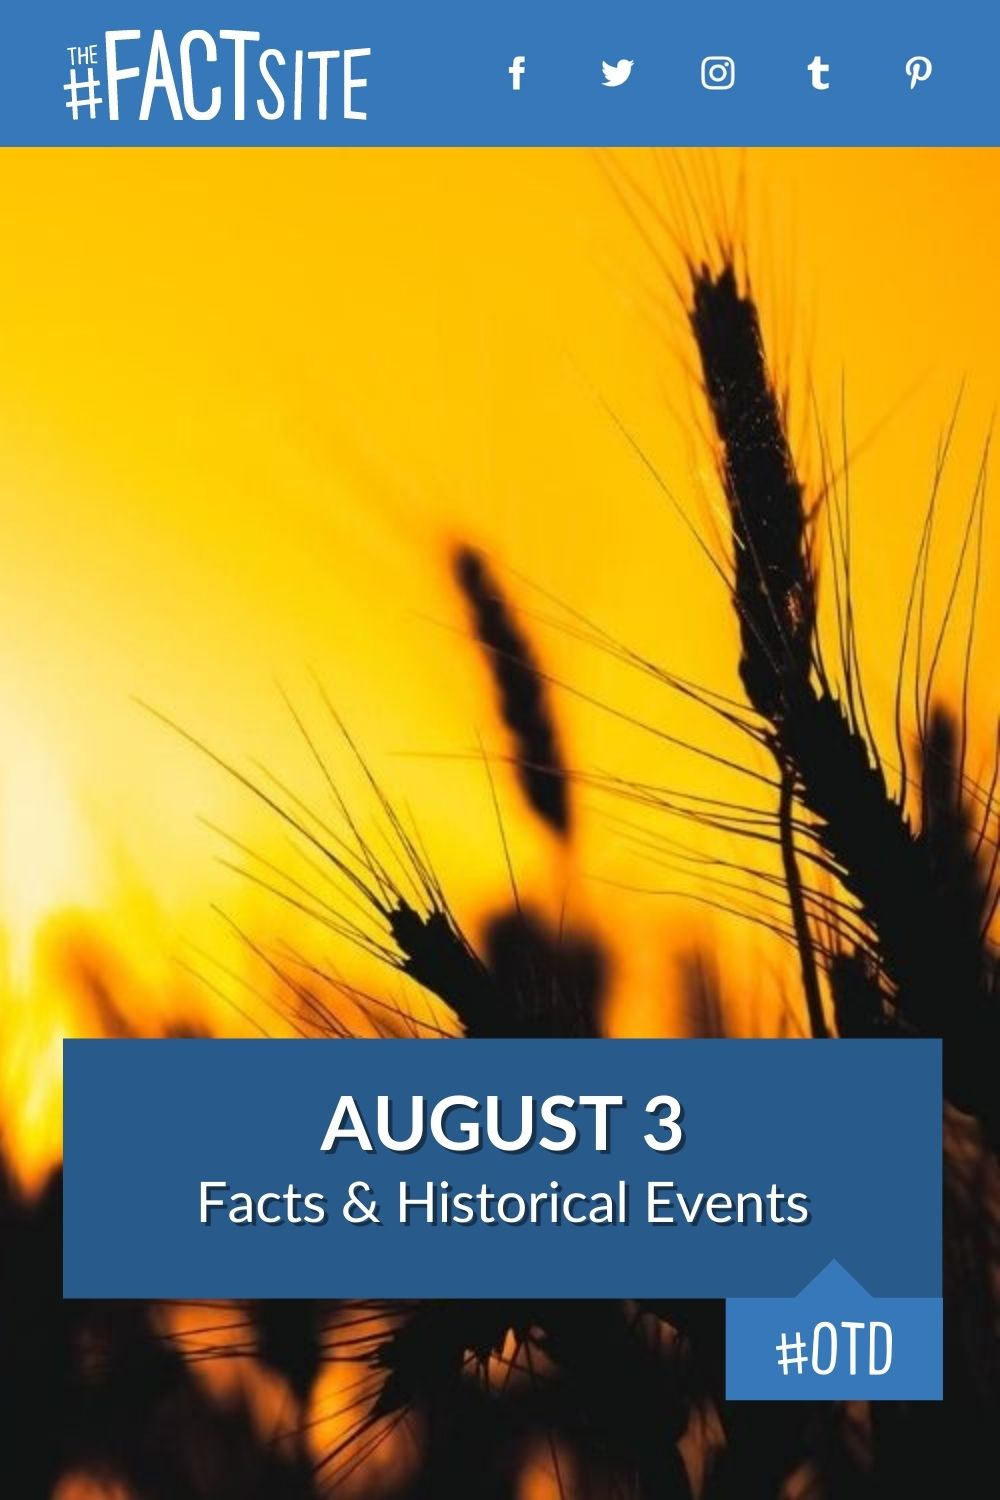 Facts & Historic Events That Happened on August 3